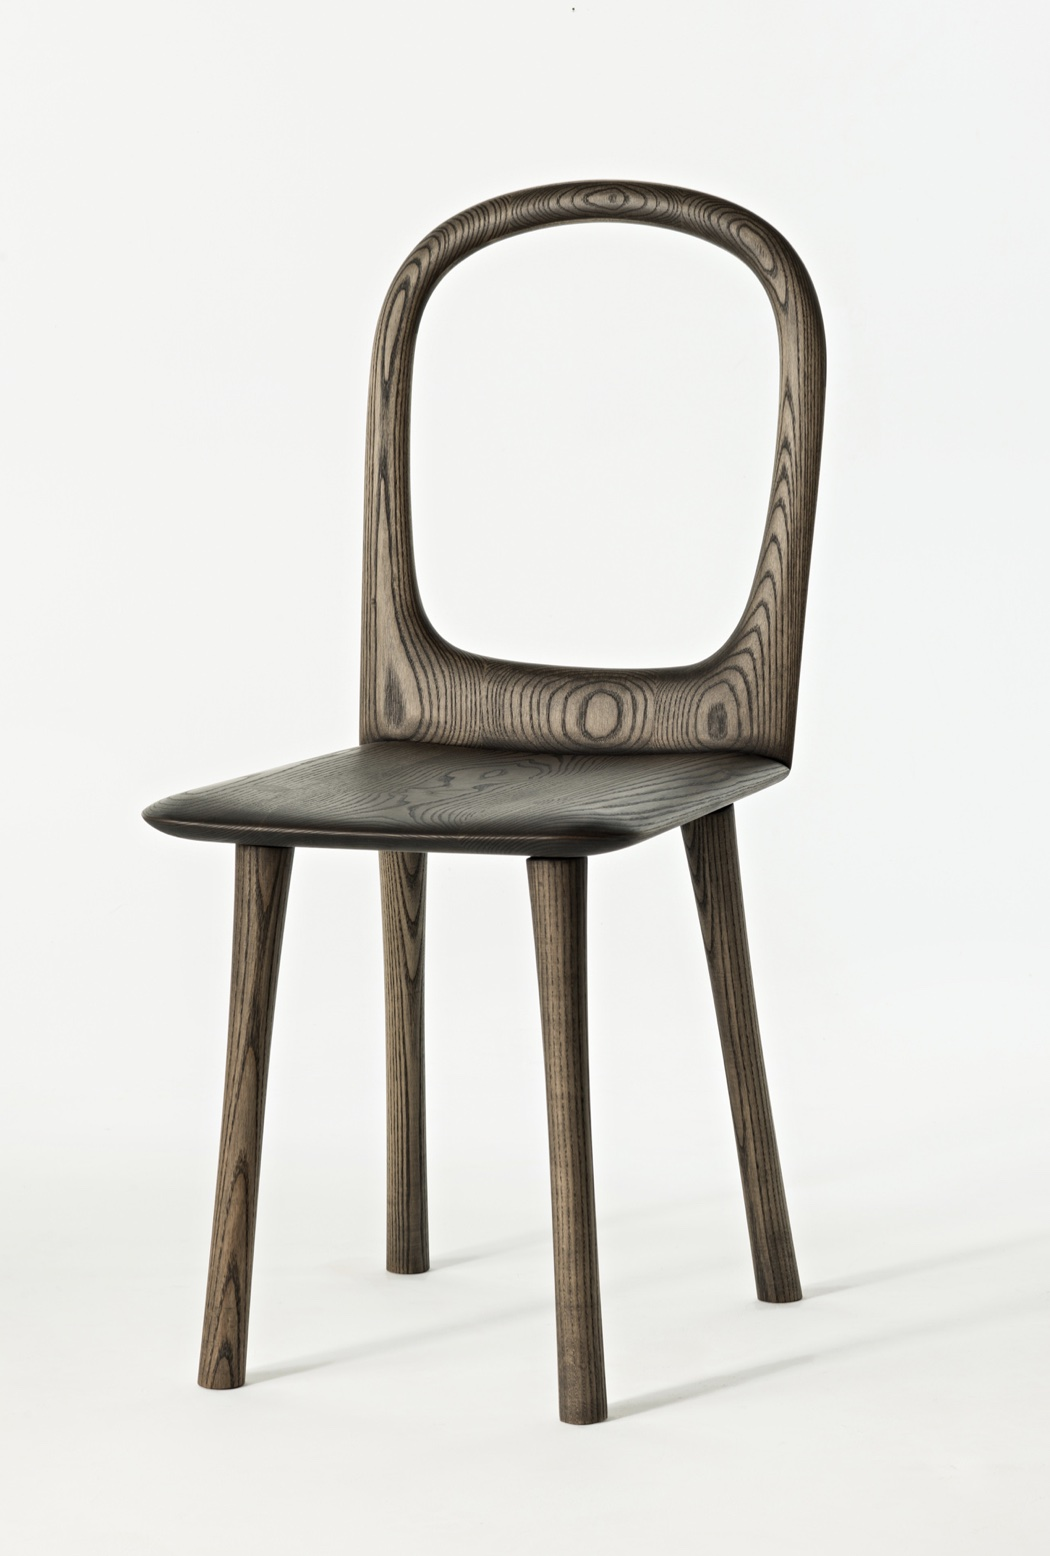 front view of the Bow Back Chair by artist Christopher Kurtz